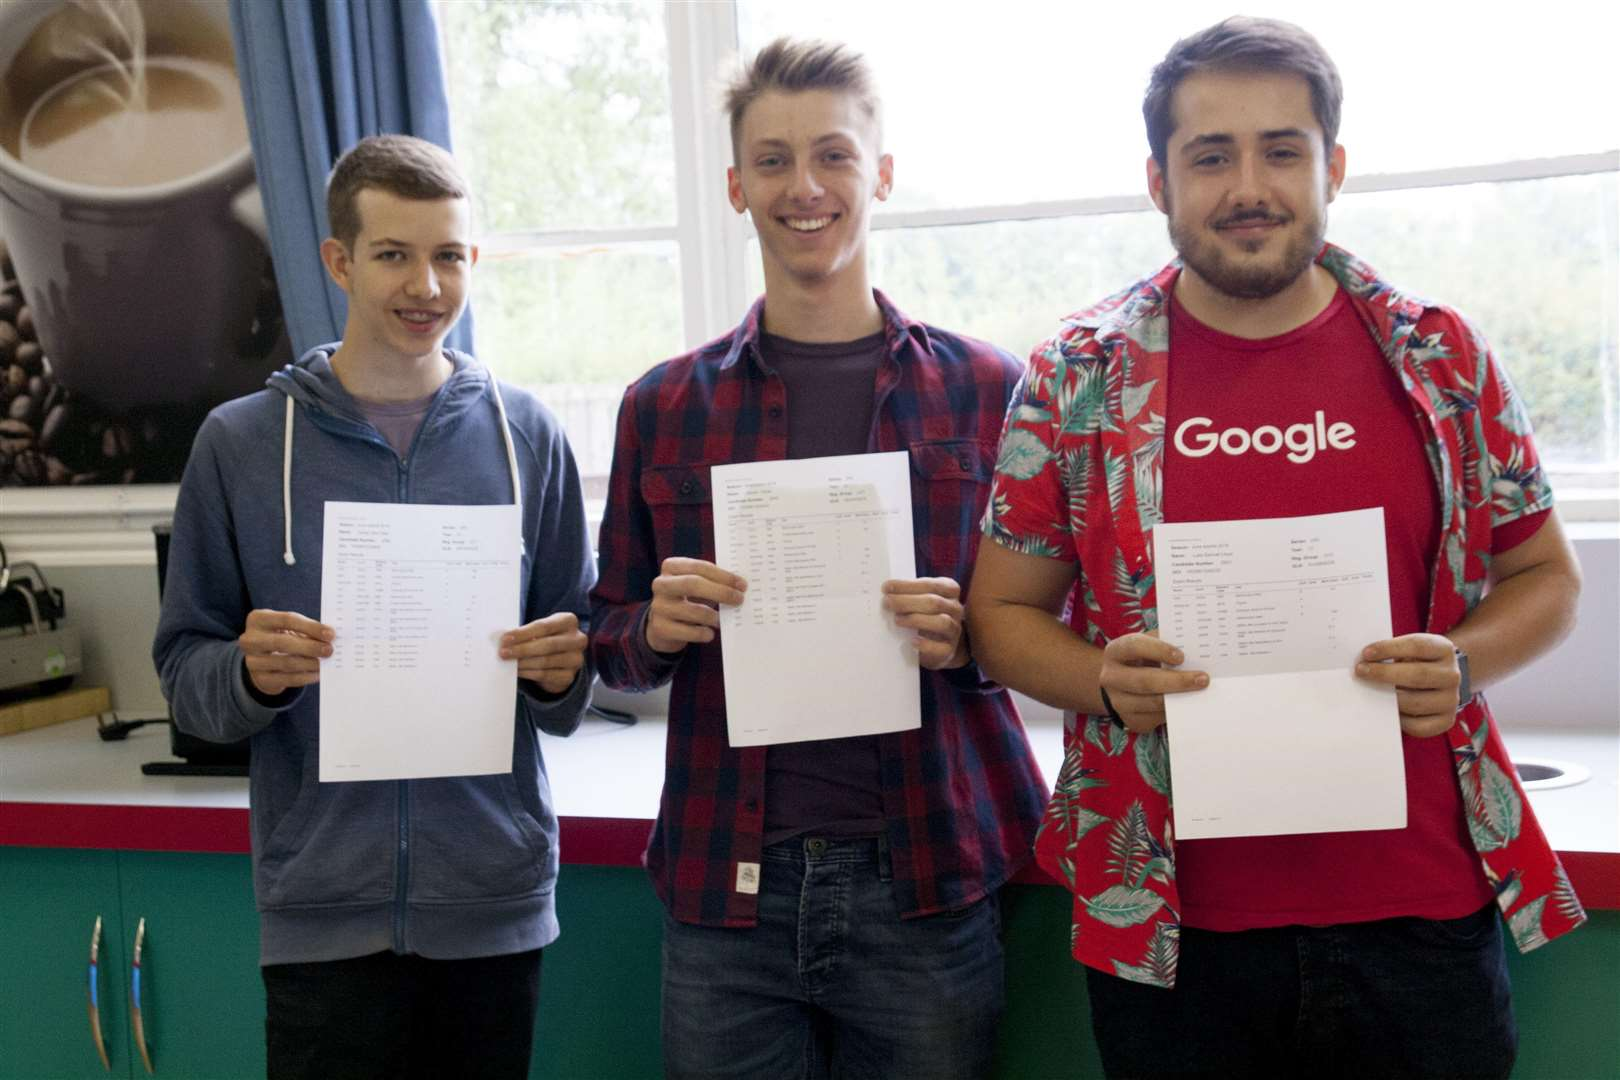 Mildenhall College Academy students Daniel Gee, Connor Carter and Luke Lloyd (3638388)